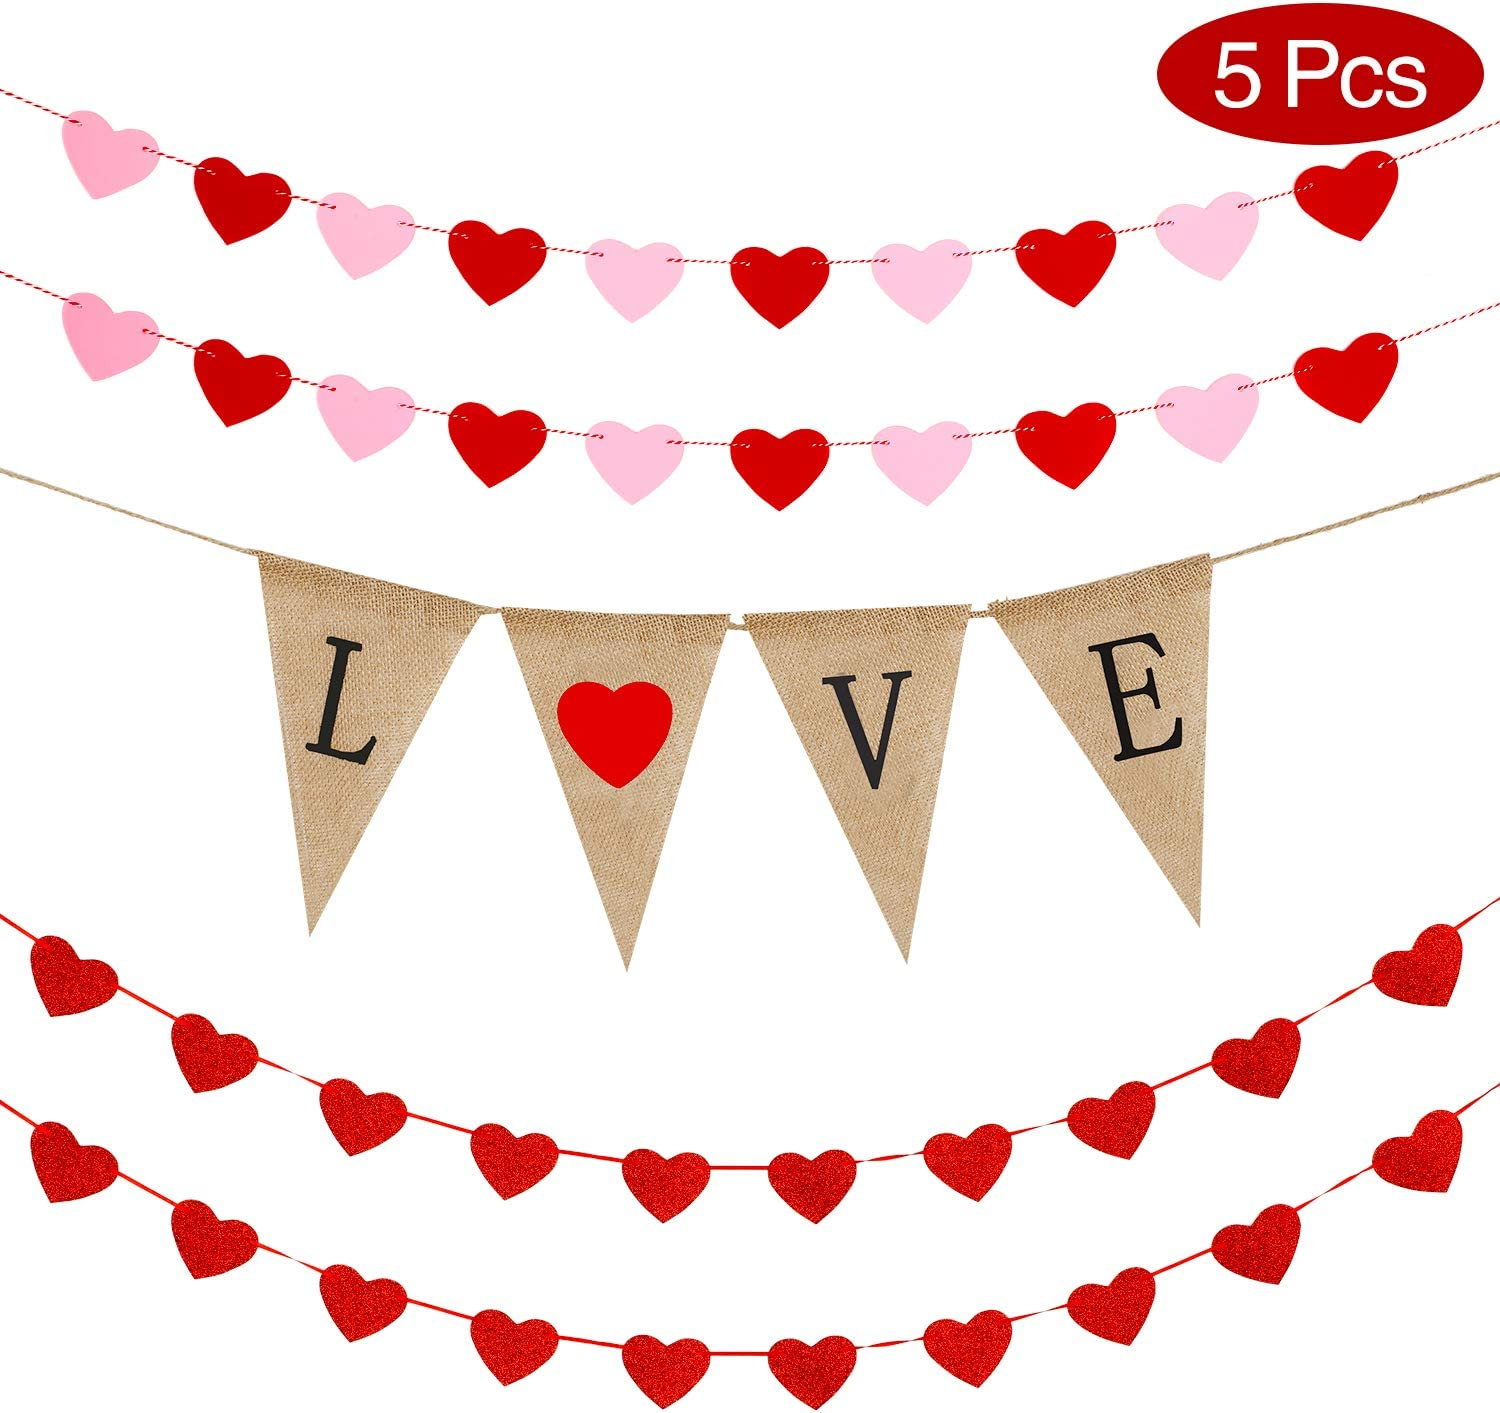 Strings Love Garland Home Paper Cardboard Party Heart Shaped Hanging Wedding